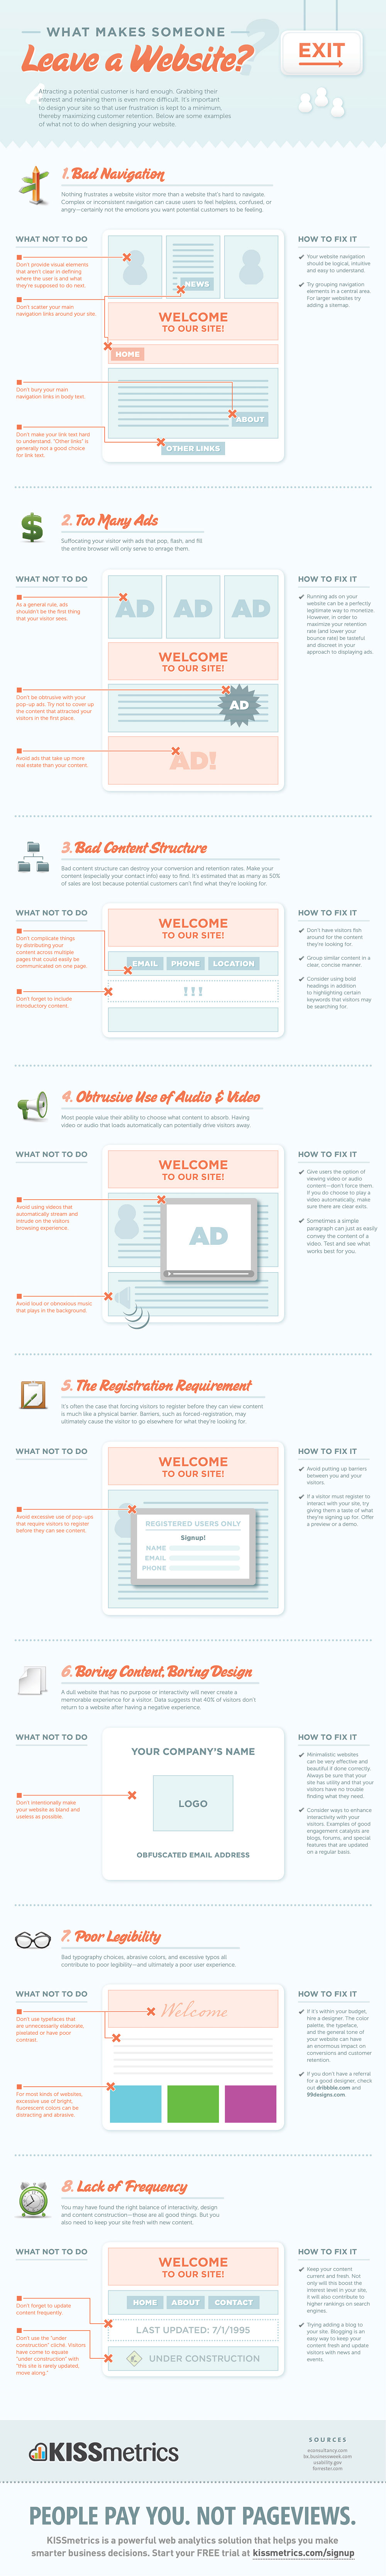 What-Makes-Someone-Leave-Website-infographic